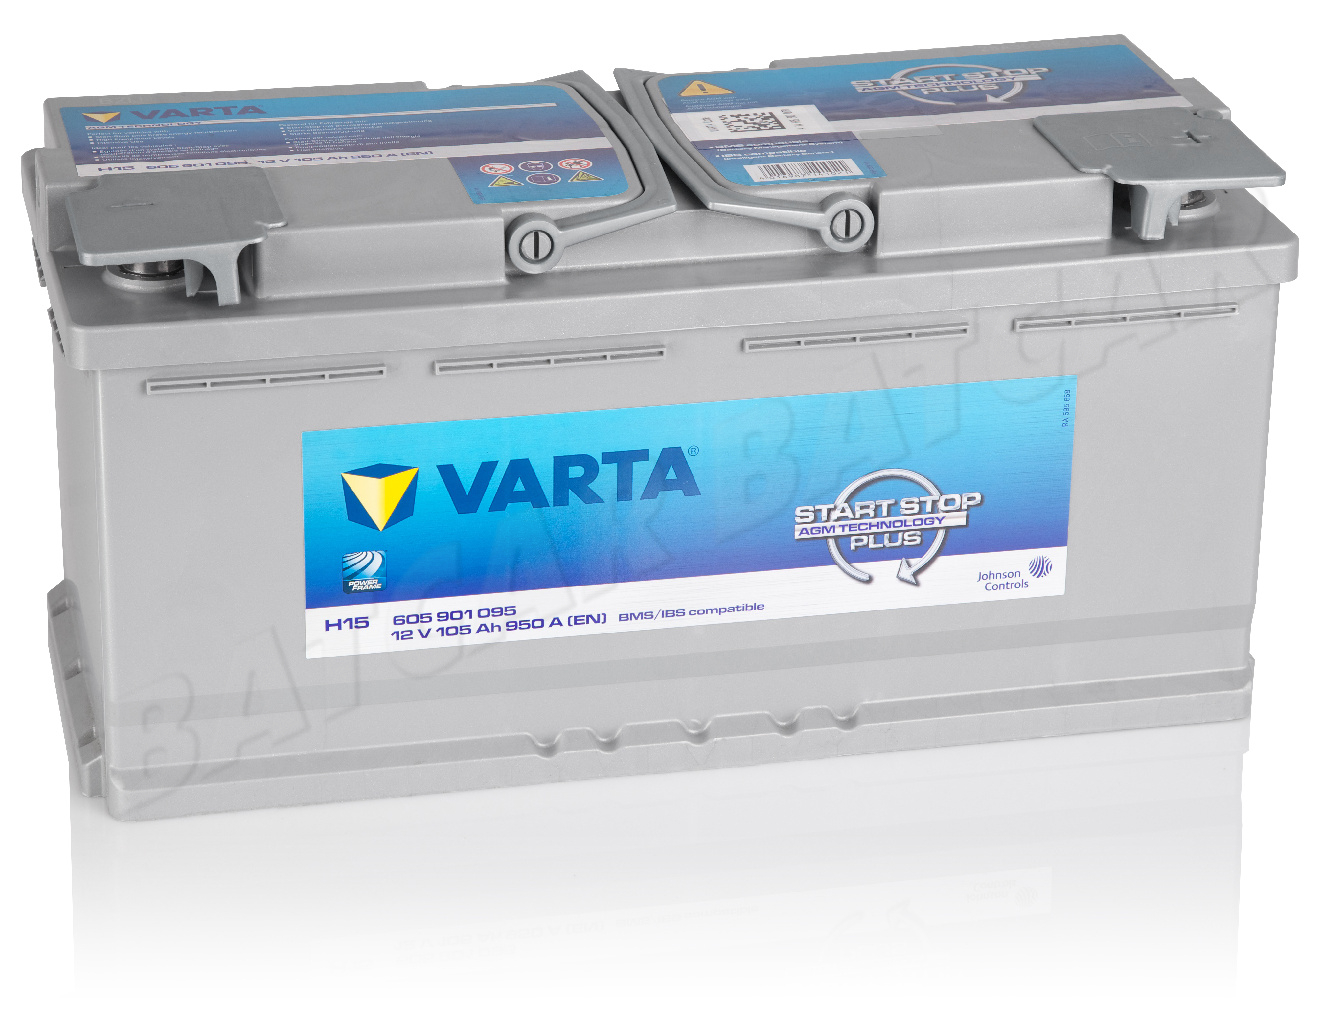 varta 105 ah autobatterie h15 start stop agm 12v 105ah. Black Bedroom Furniture Sets. Home Design Ideas